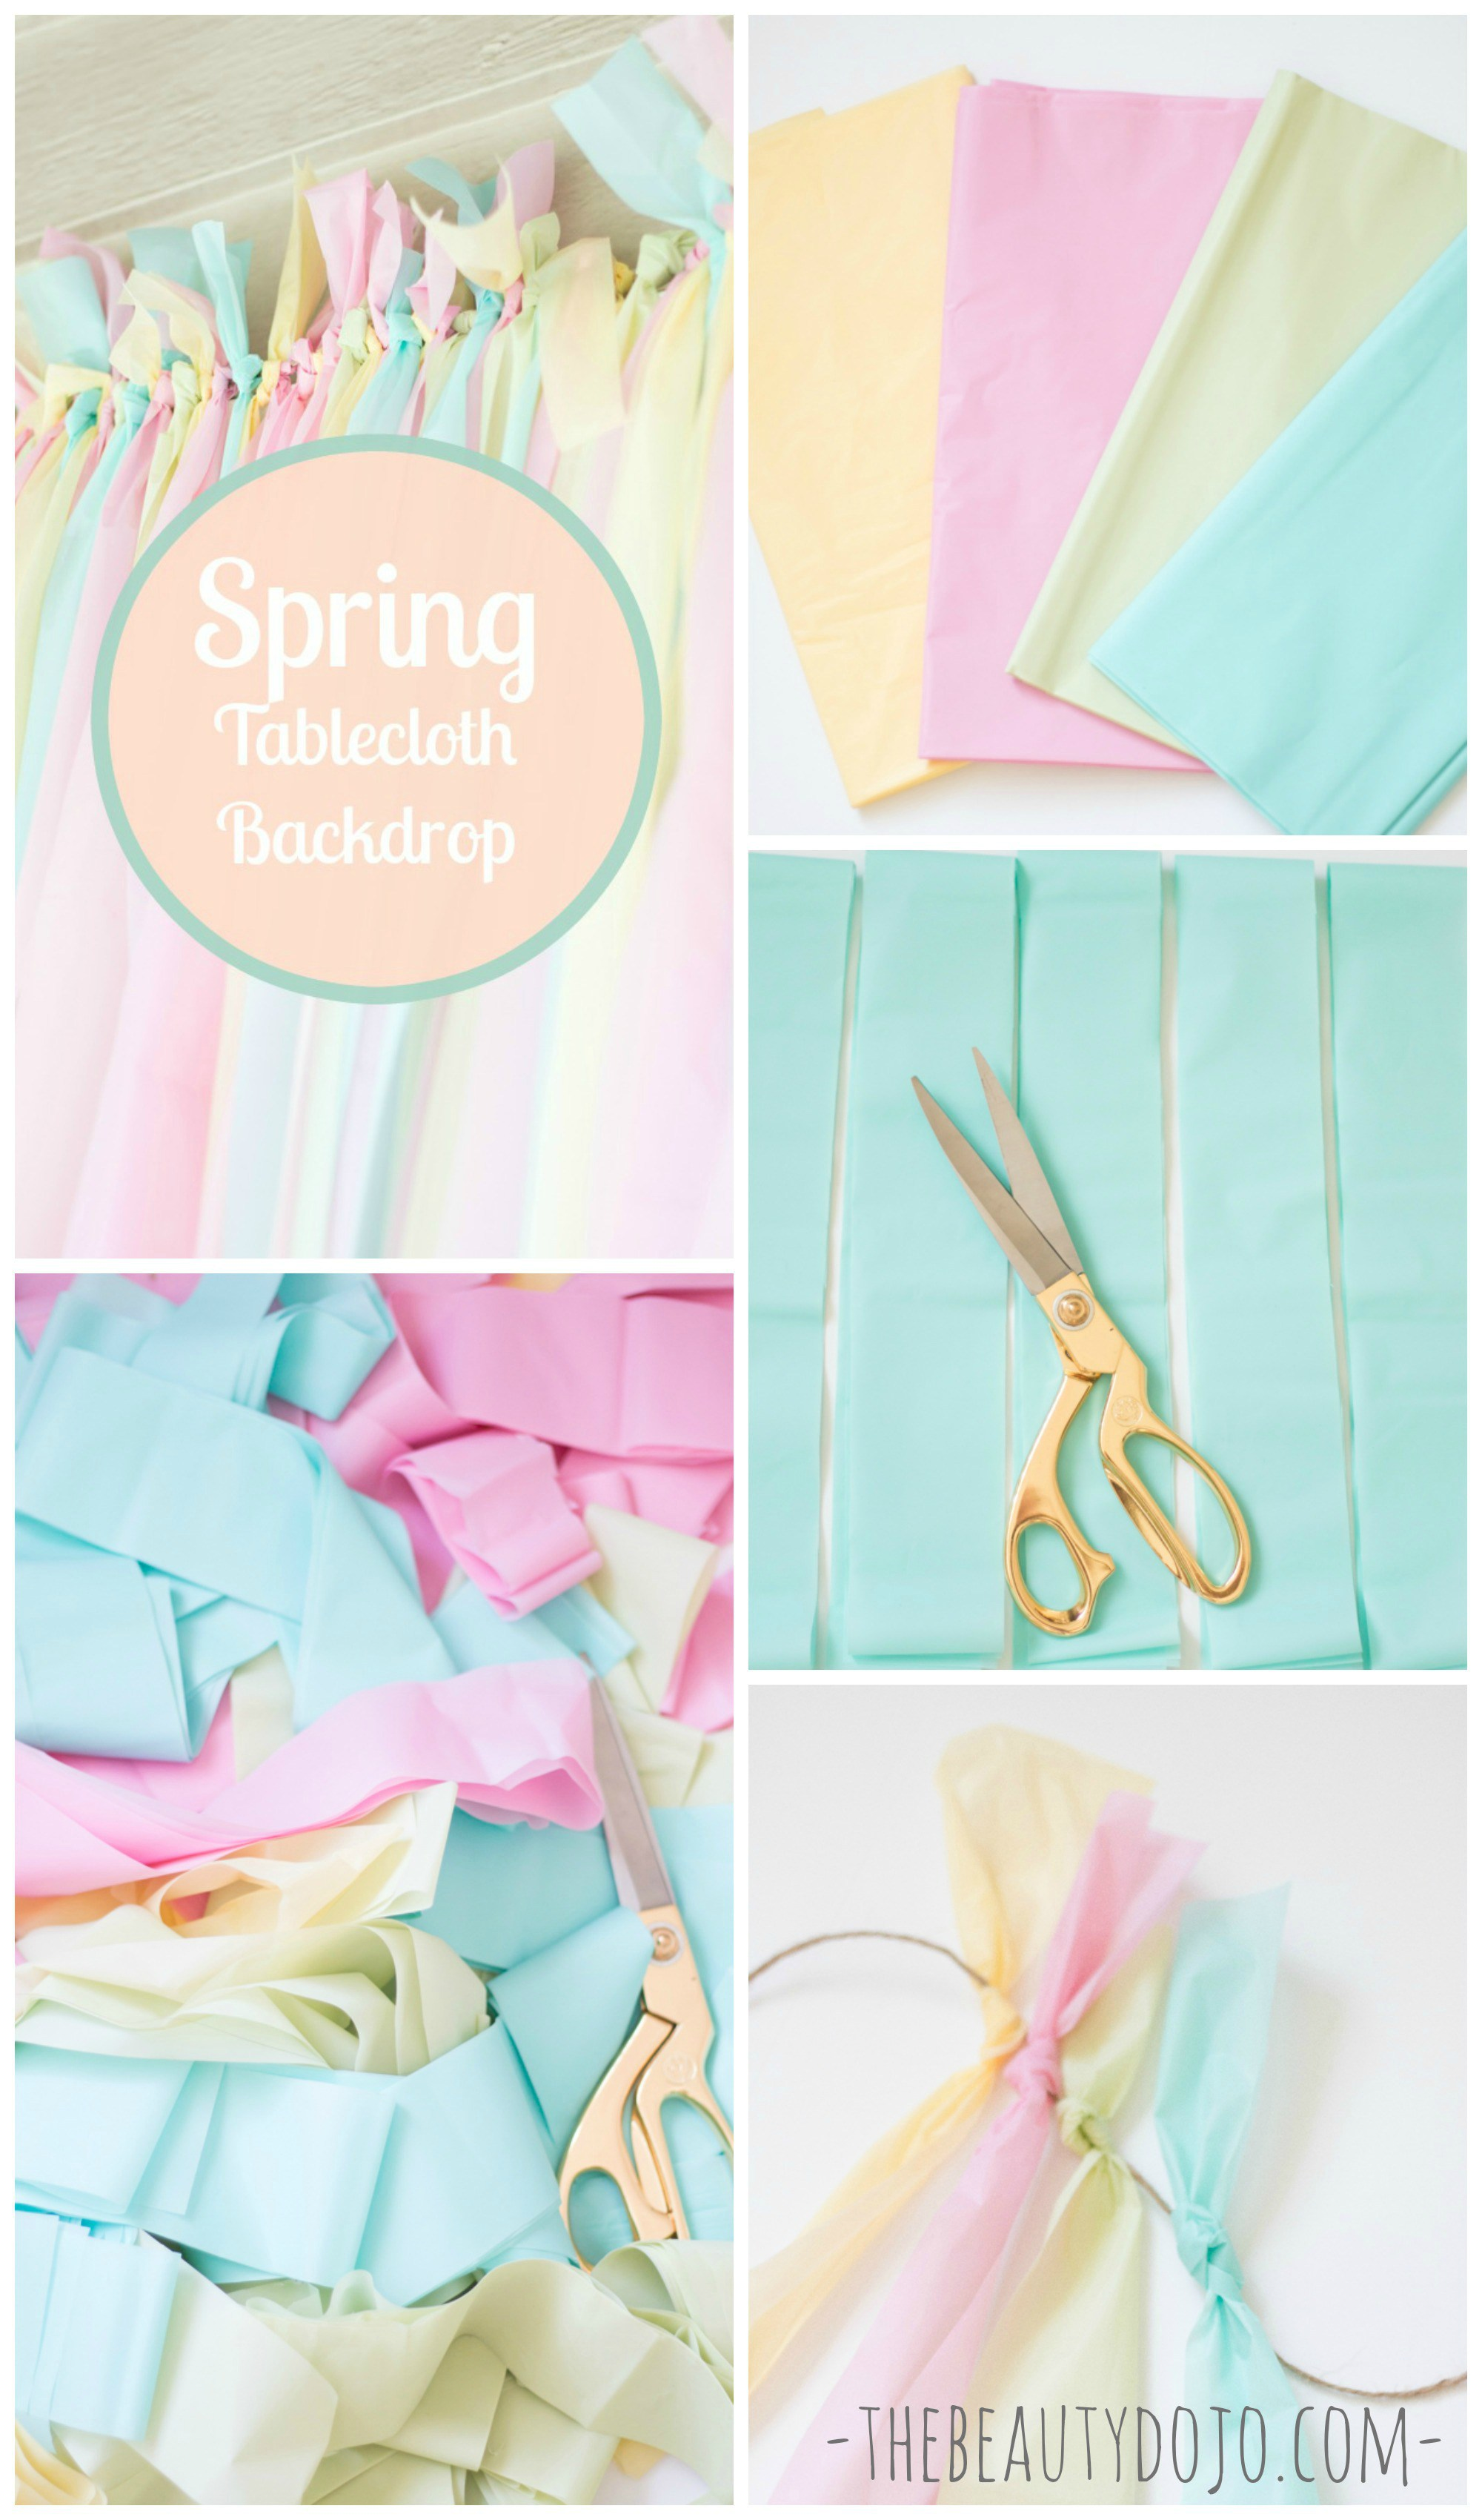 Easy Spring Backdrop with Tablecloths -